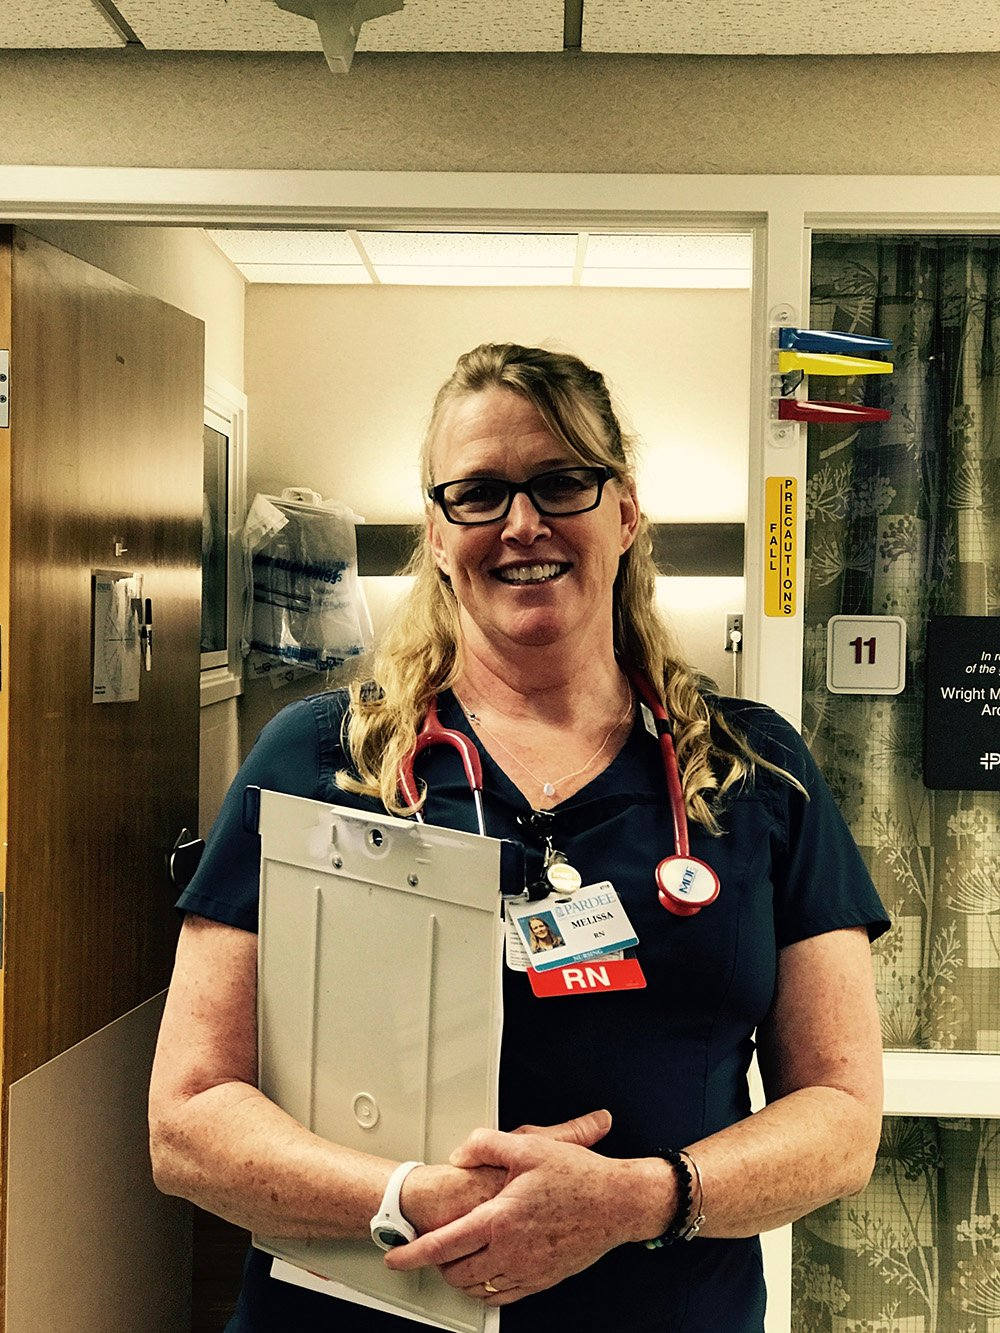 This is a photo of Melissa, a nurse at Pardee